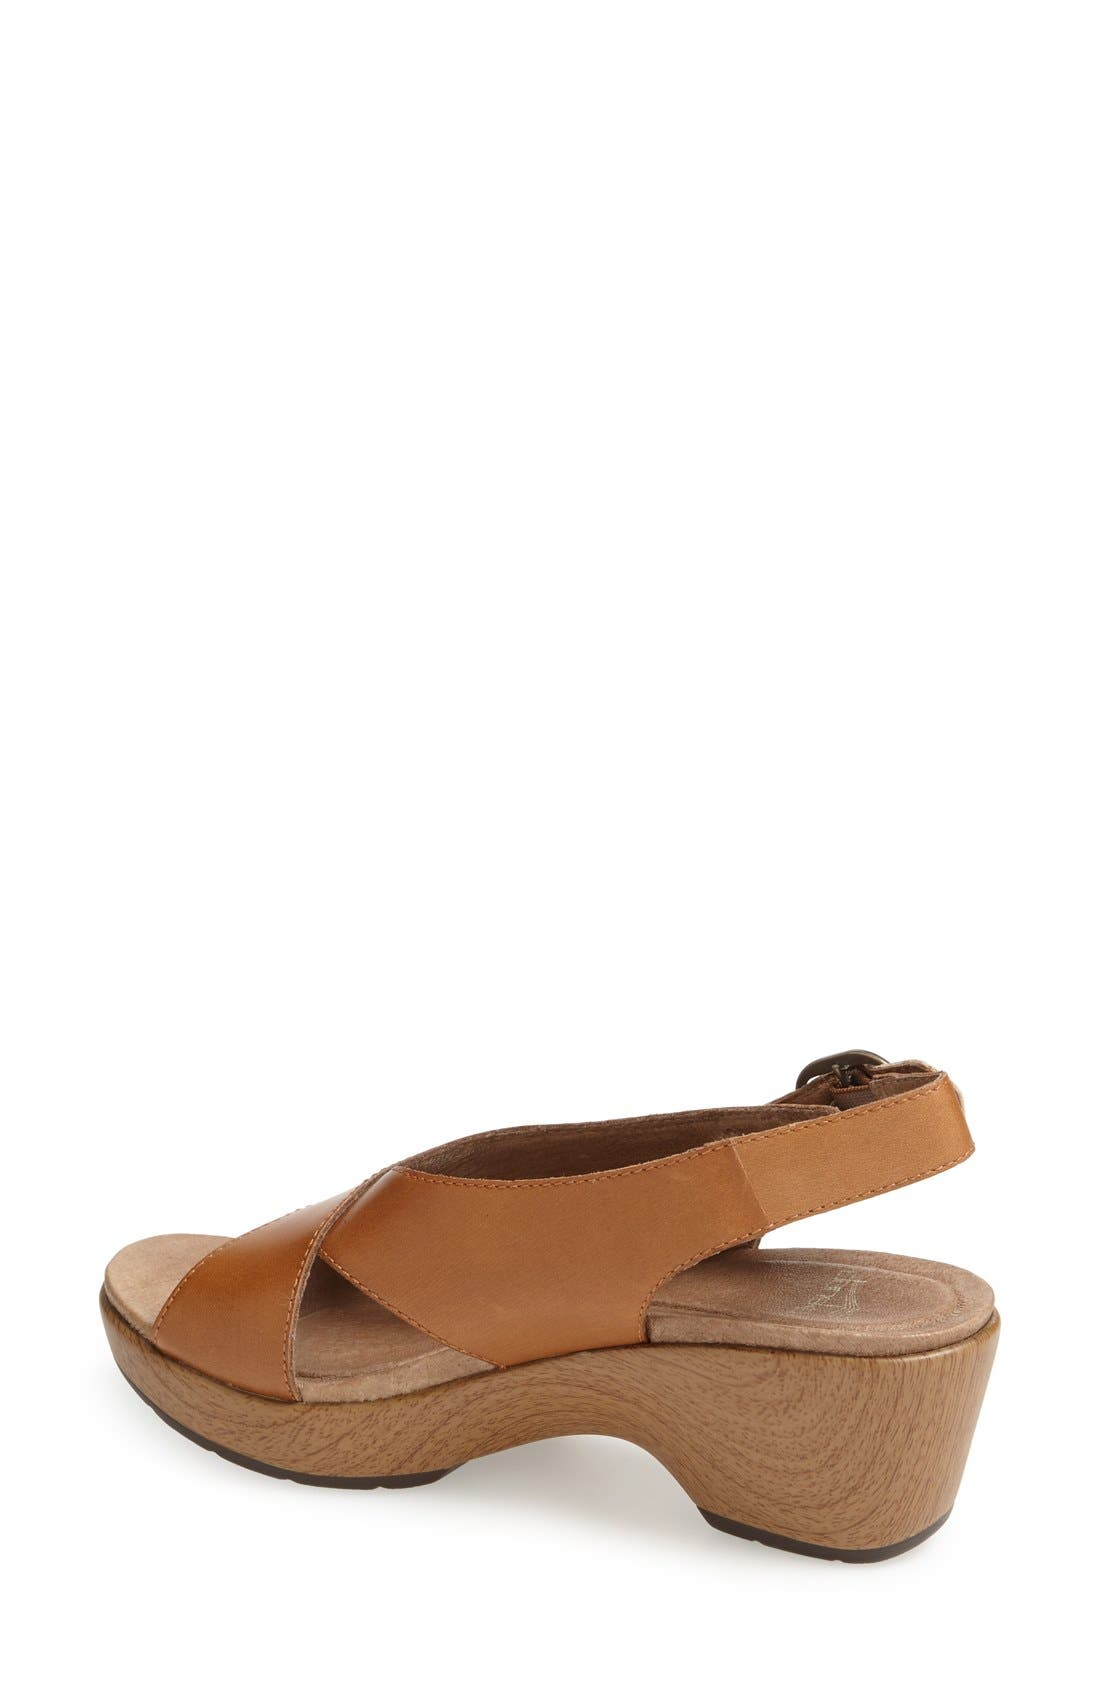 Alternate Image 2  - Dansko 'Jacinda' Sandal (Women)